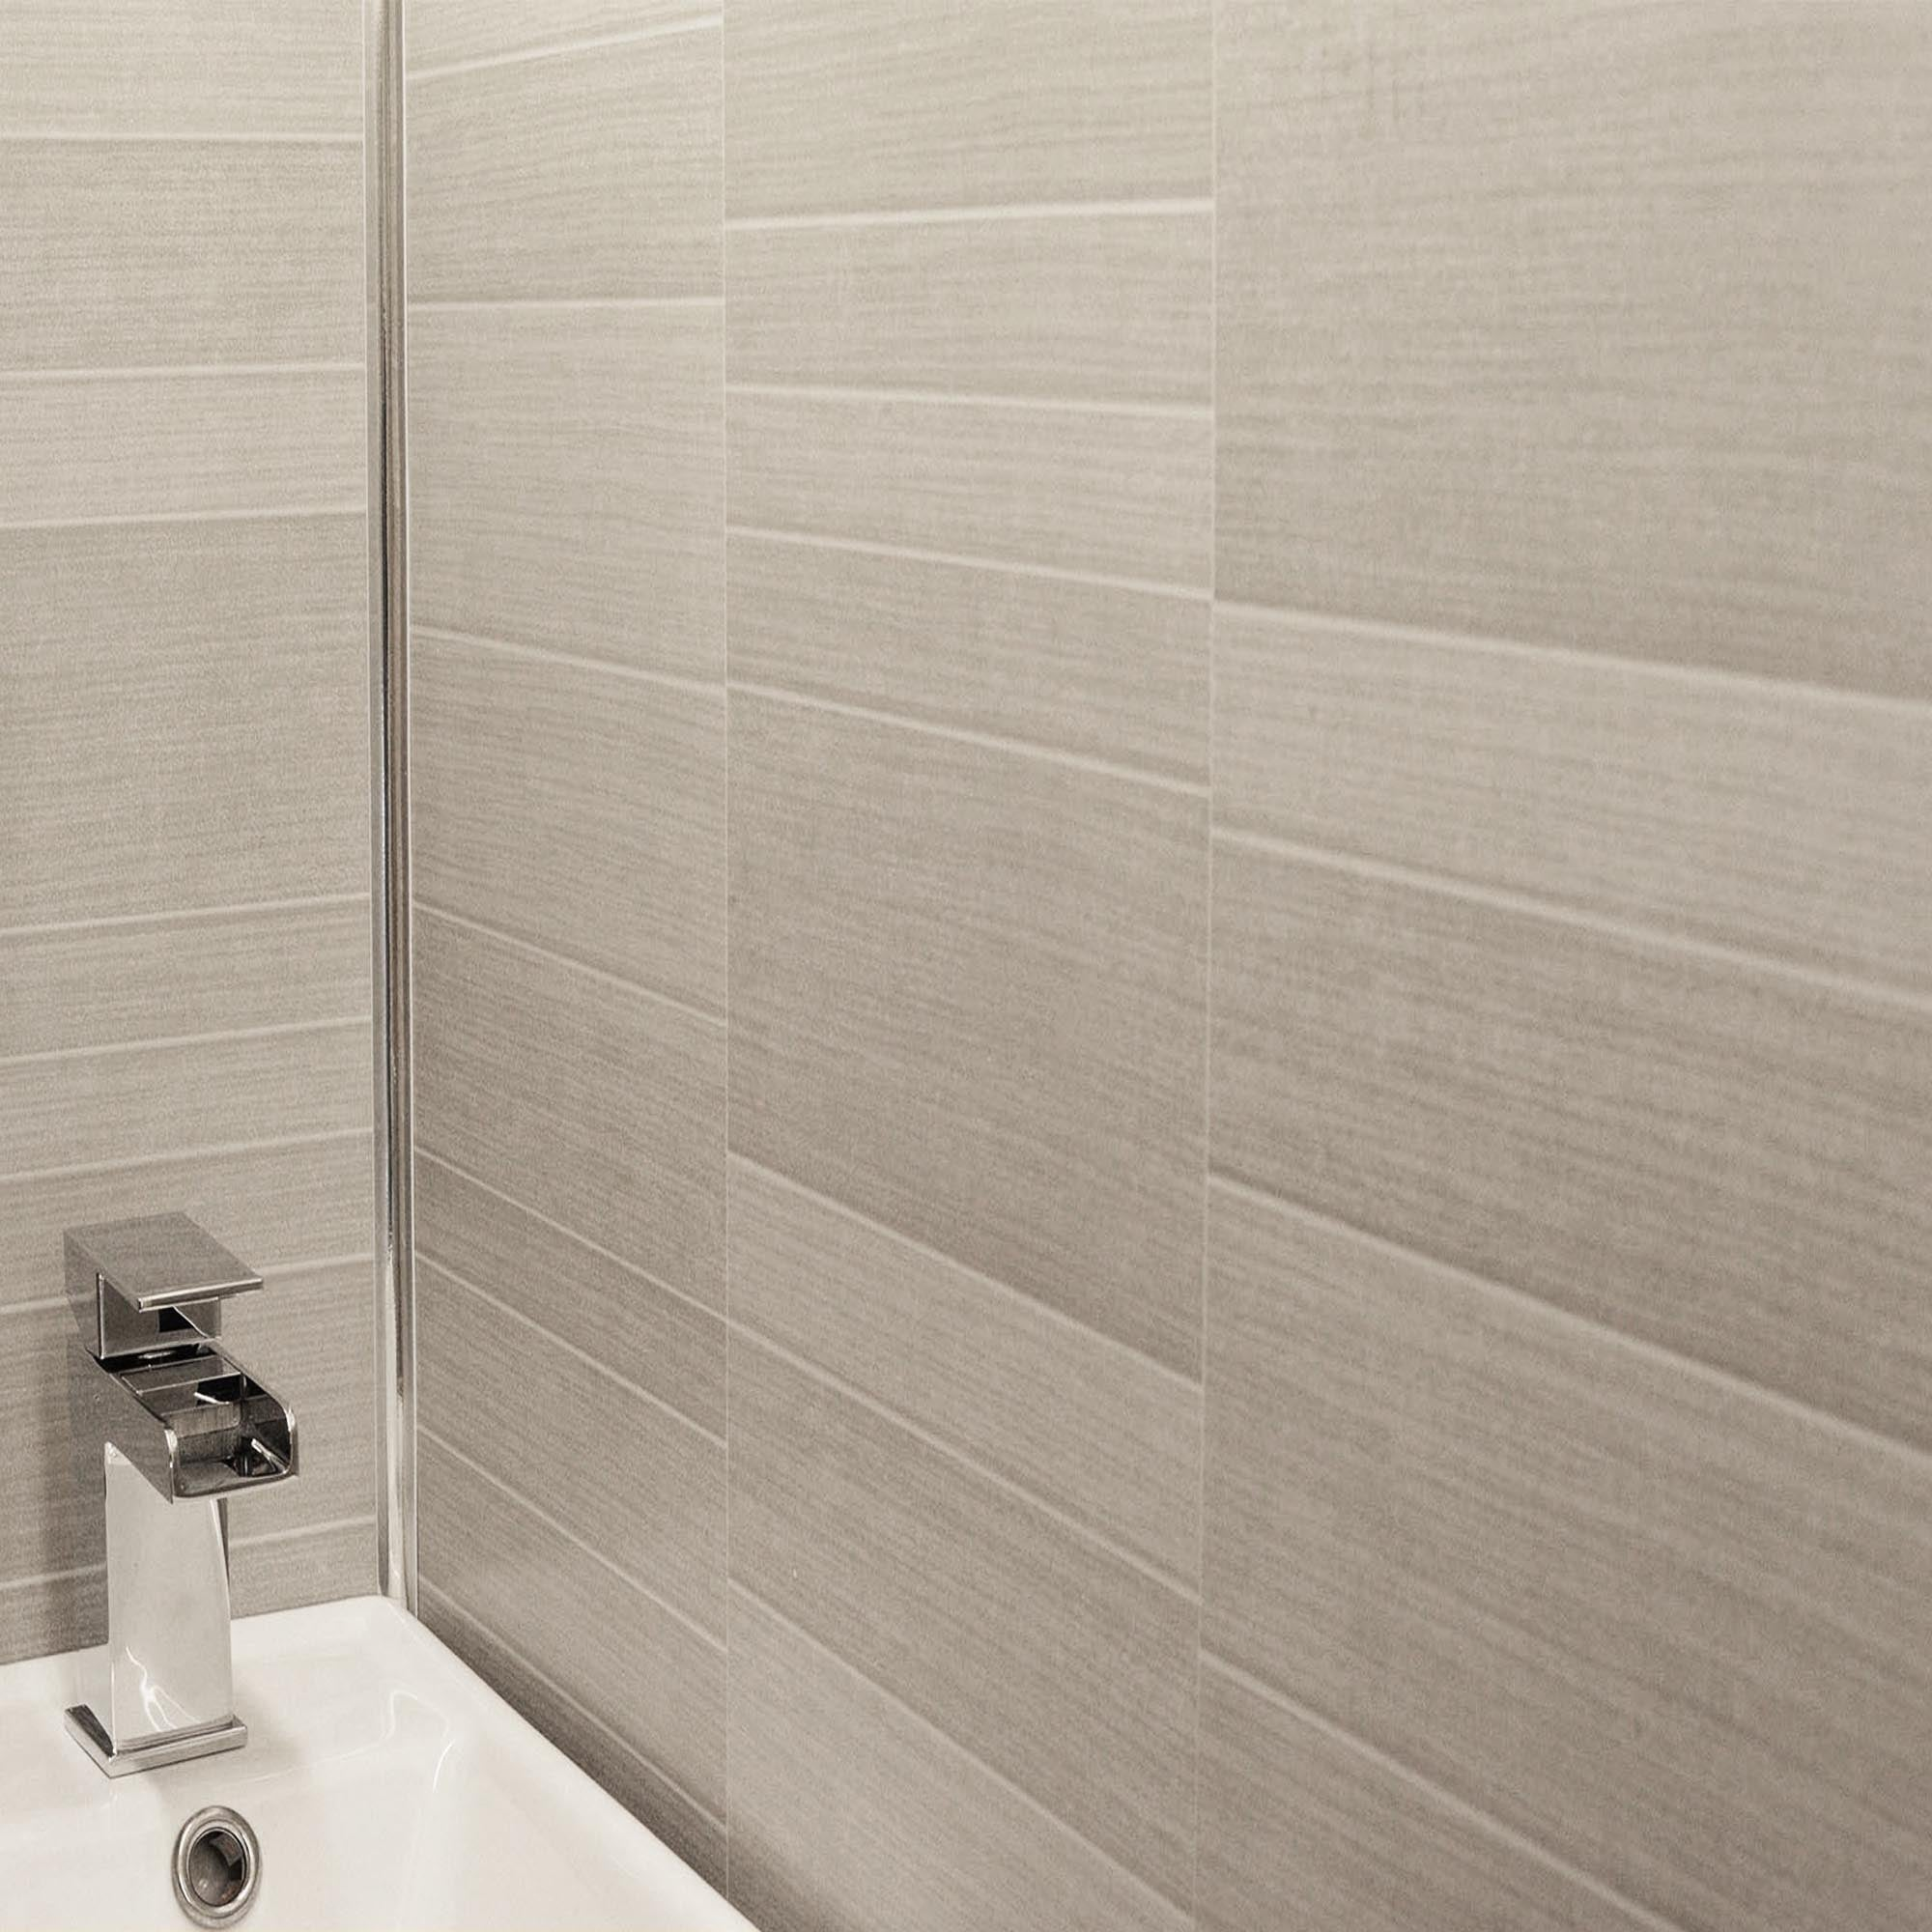 Light Grey Small Tile Effect Bathroom Wall Panels PVC 5mm ...